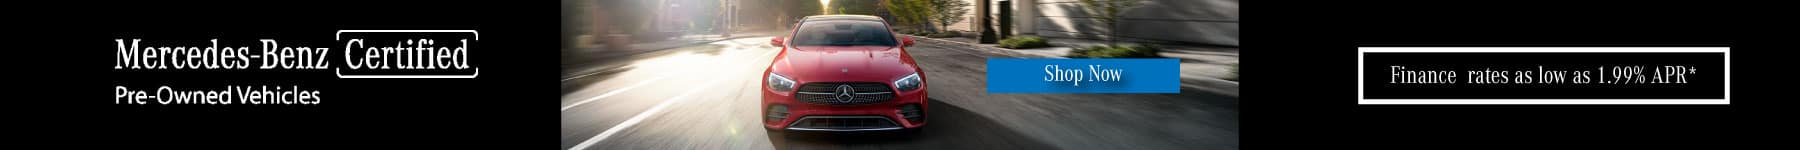 Mercedes-Benz certified pre owned financingspecial